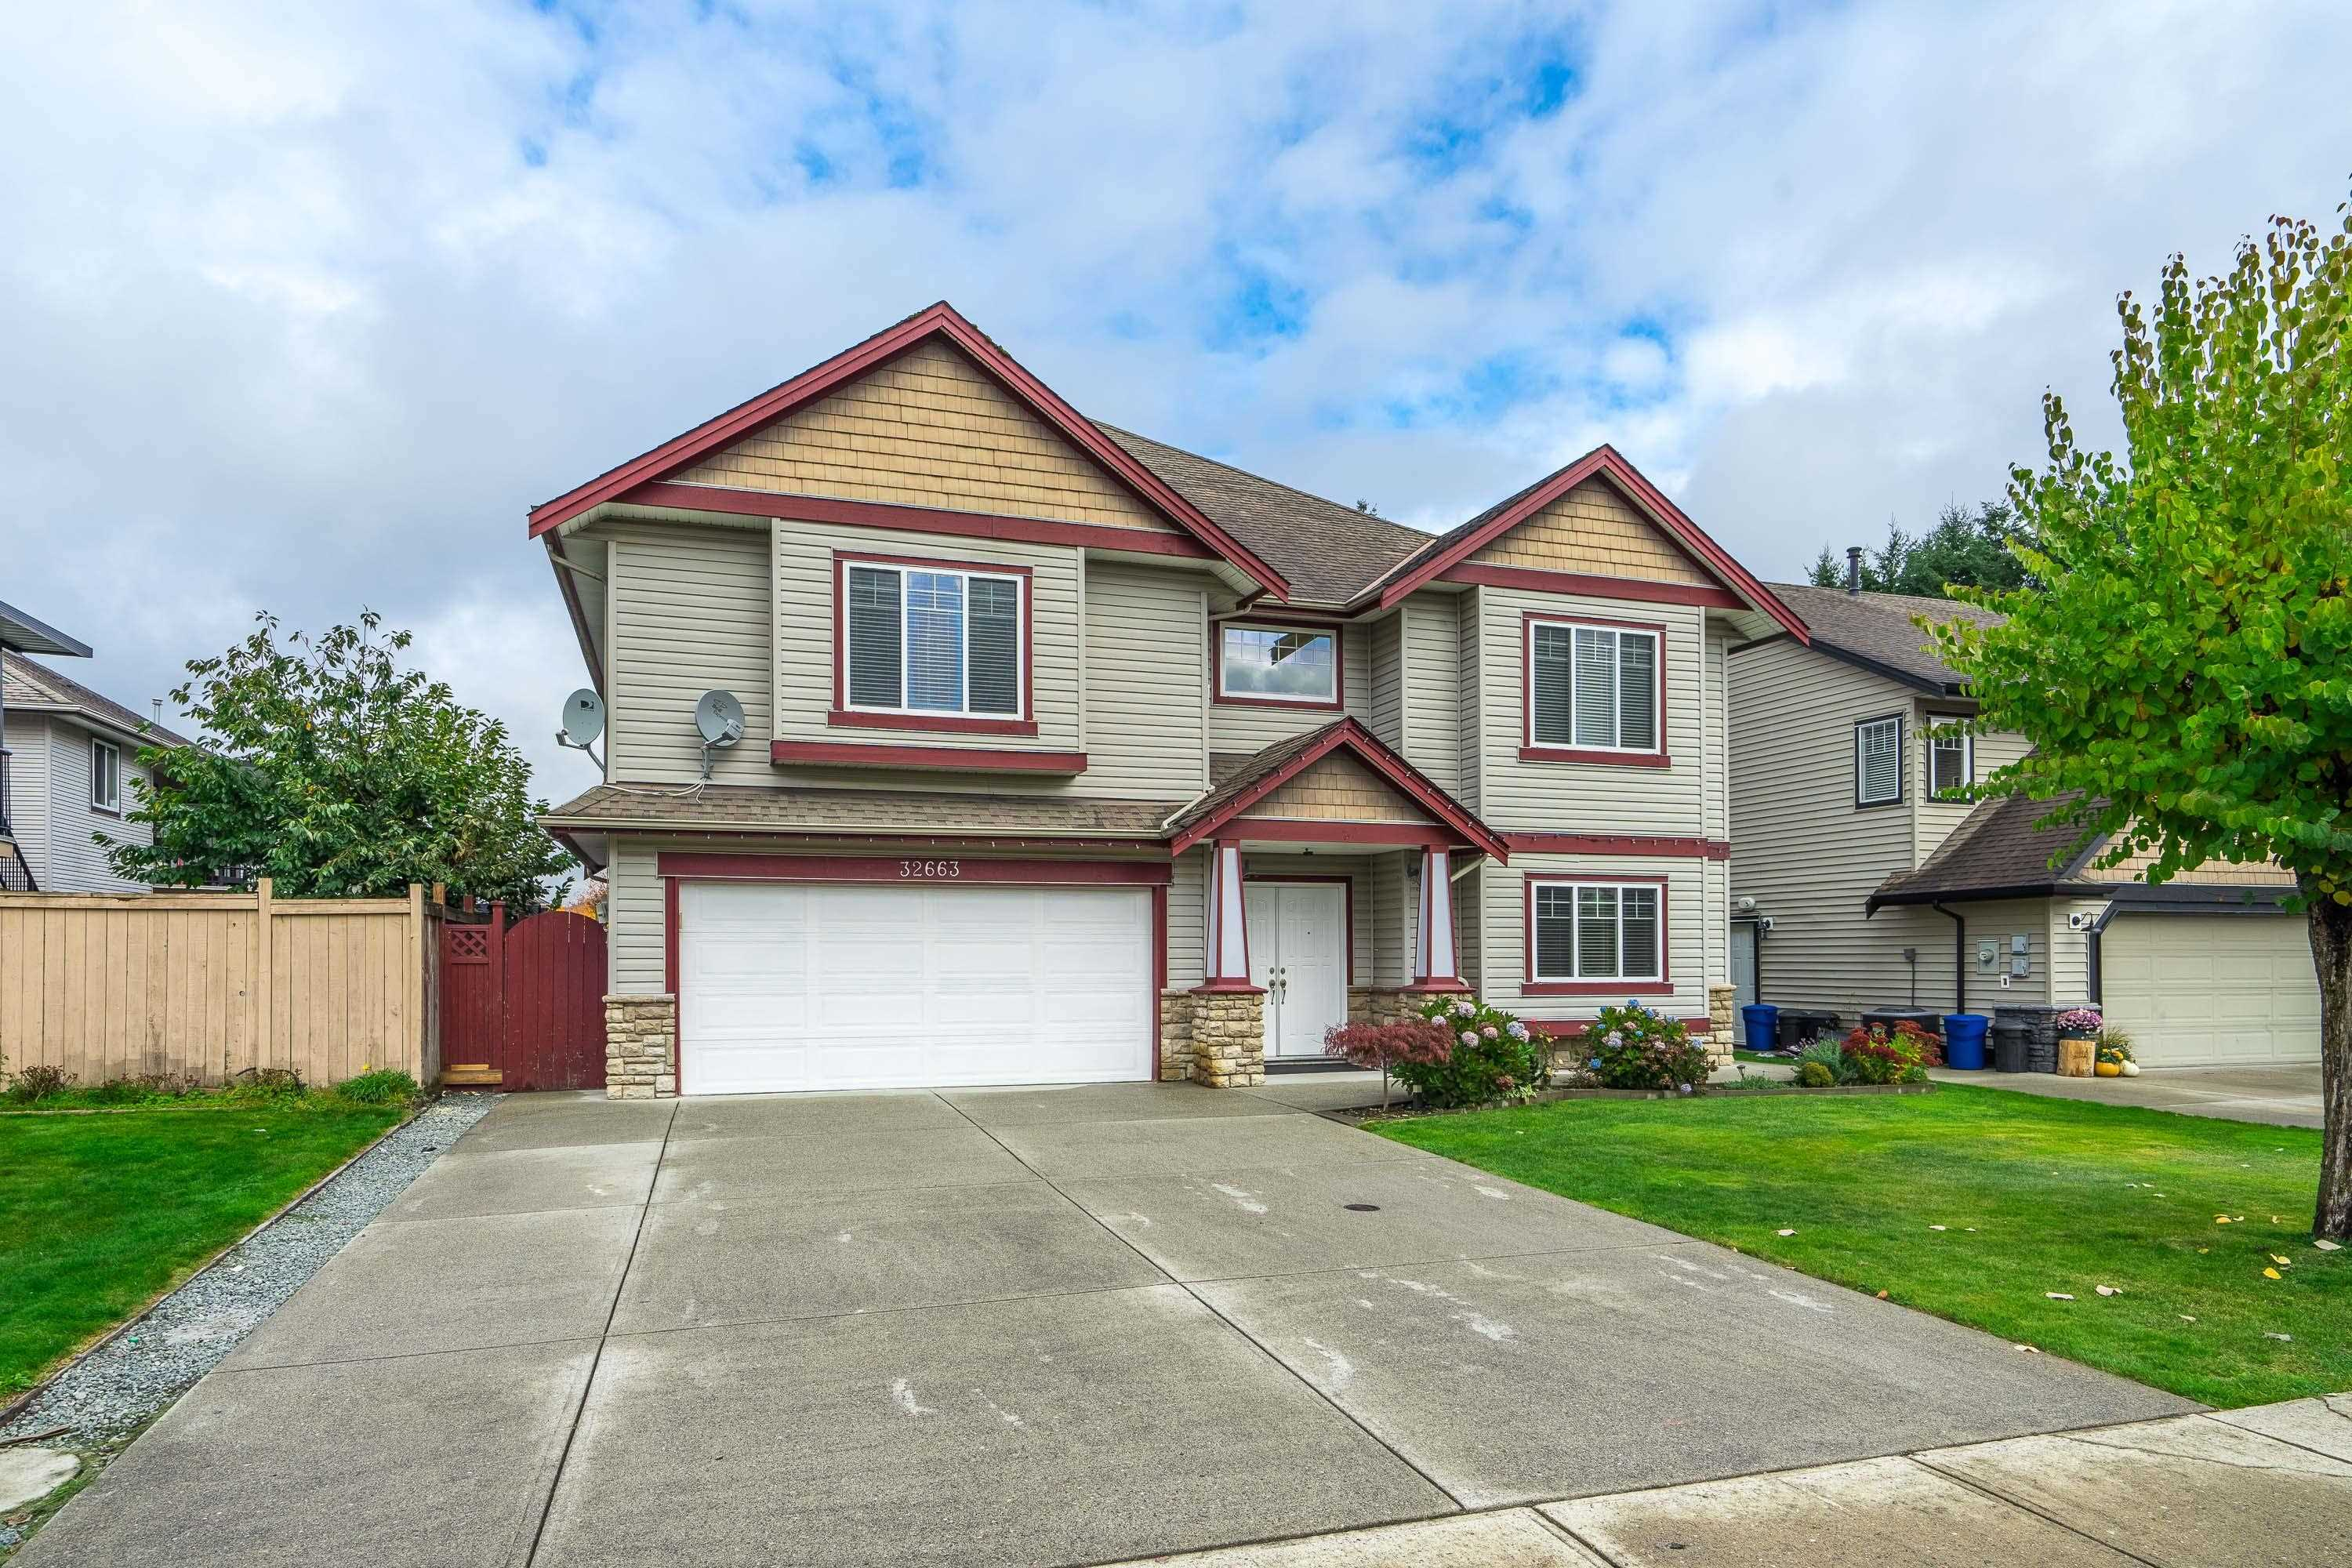 32663 MITCHELL AVENUE - Mission BC House/Single Family for sale, 7 Bedrooms (R2625952) - #1